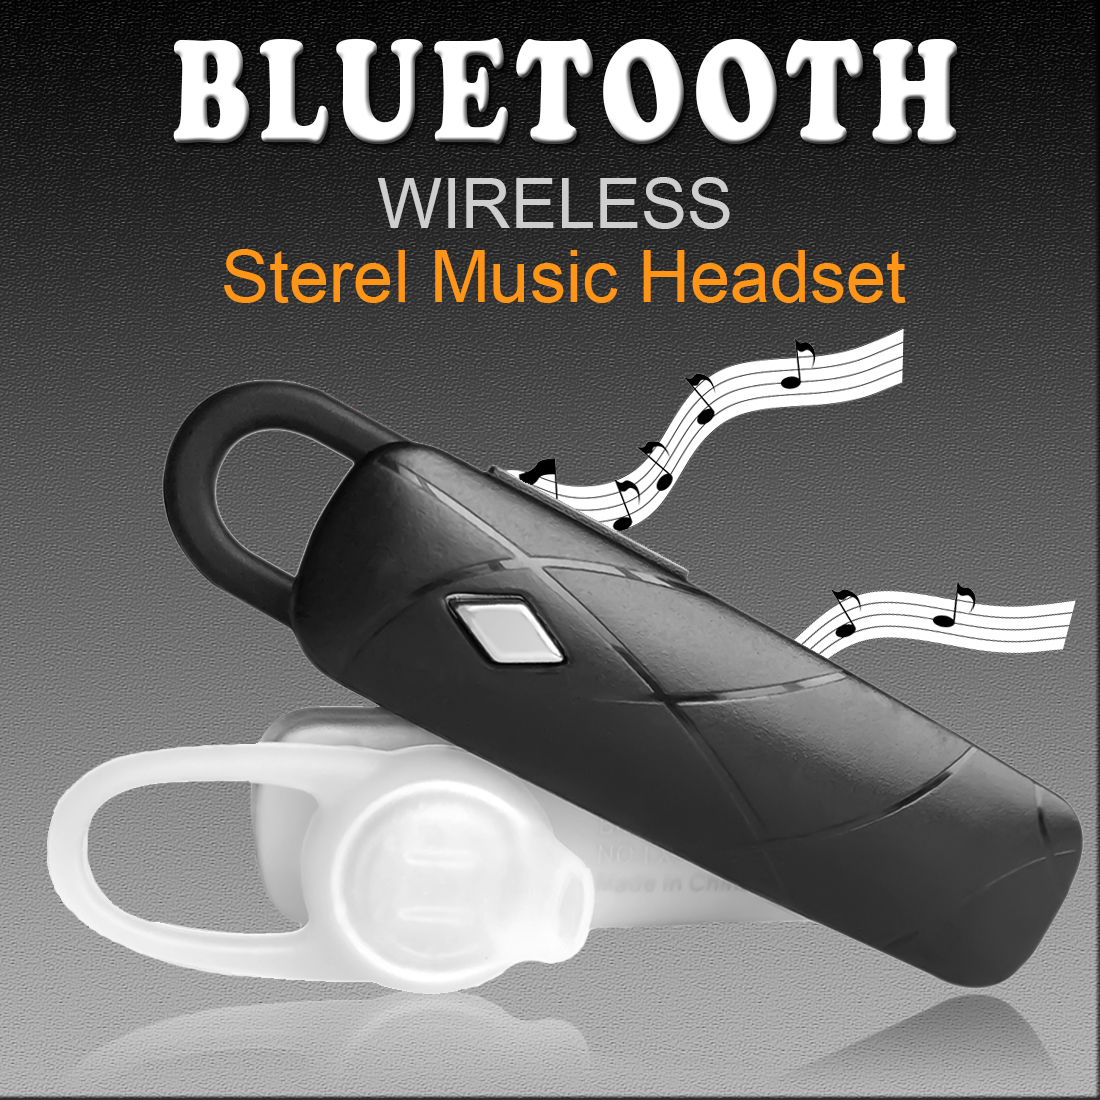 Marsnaska Stereo Bluetooth Headset Headphone Wireless Earphone with Mic Sport Music Earpiece For iPhone Android All Smart Phone wireless bluetooth earphone headphones s9 sport earpiece headset with tf card slot 8g auriculares with micro for iphone android